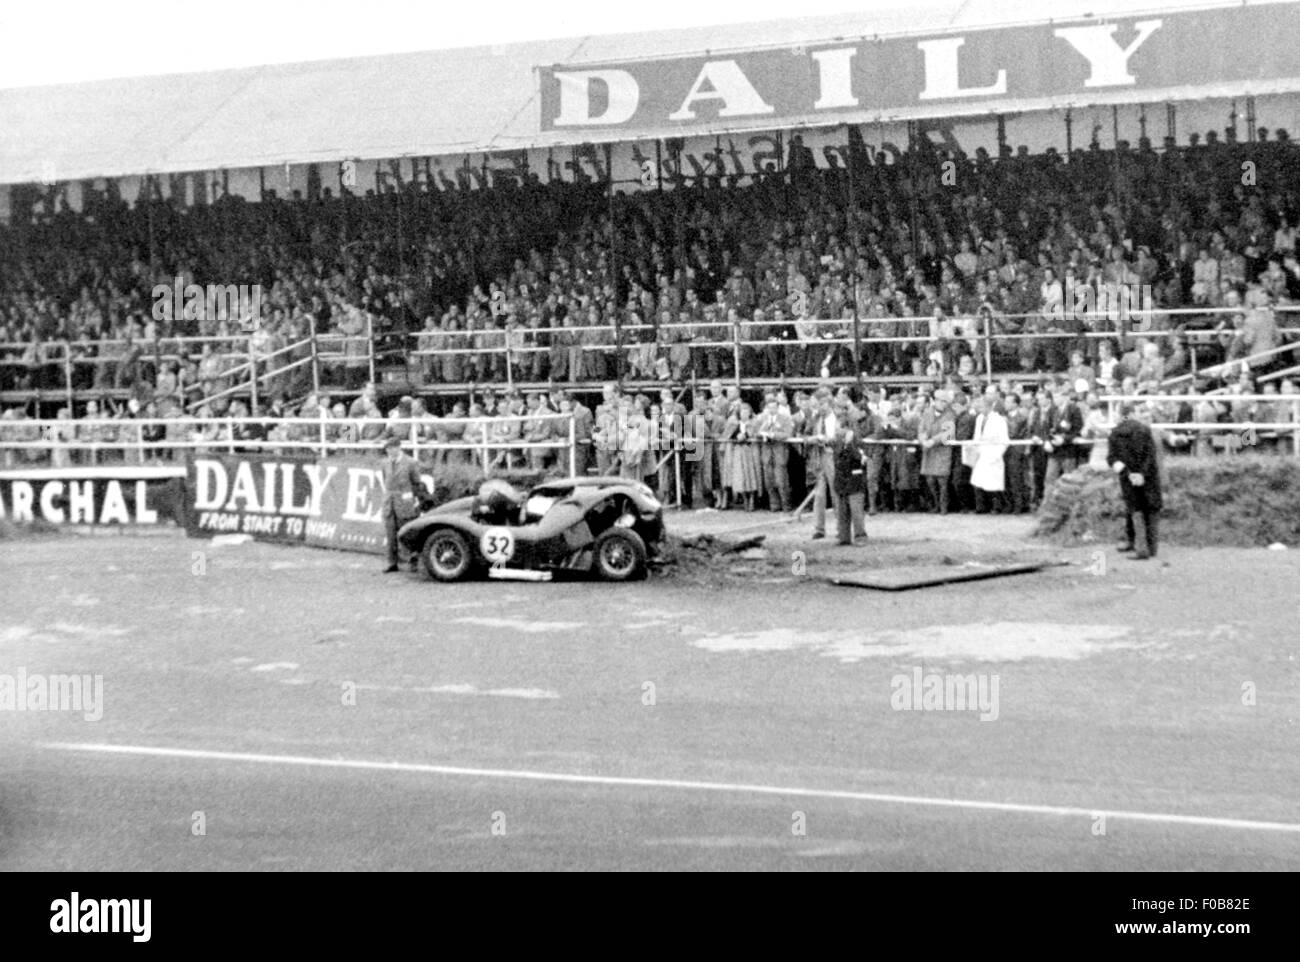 Crashed sports car at Silverstone 1957 - Stock Image